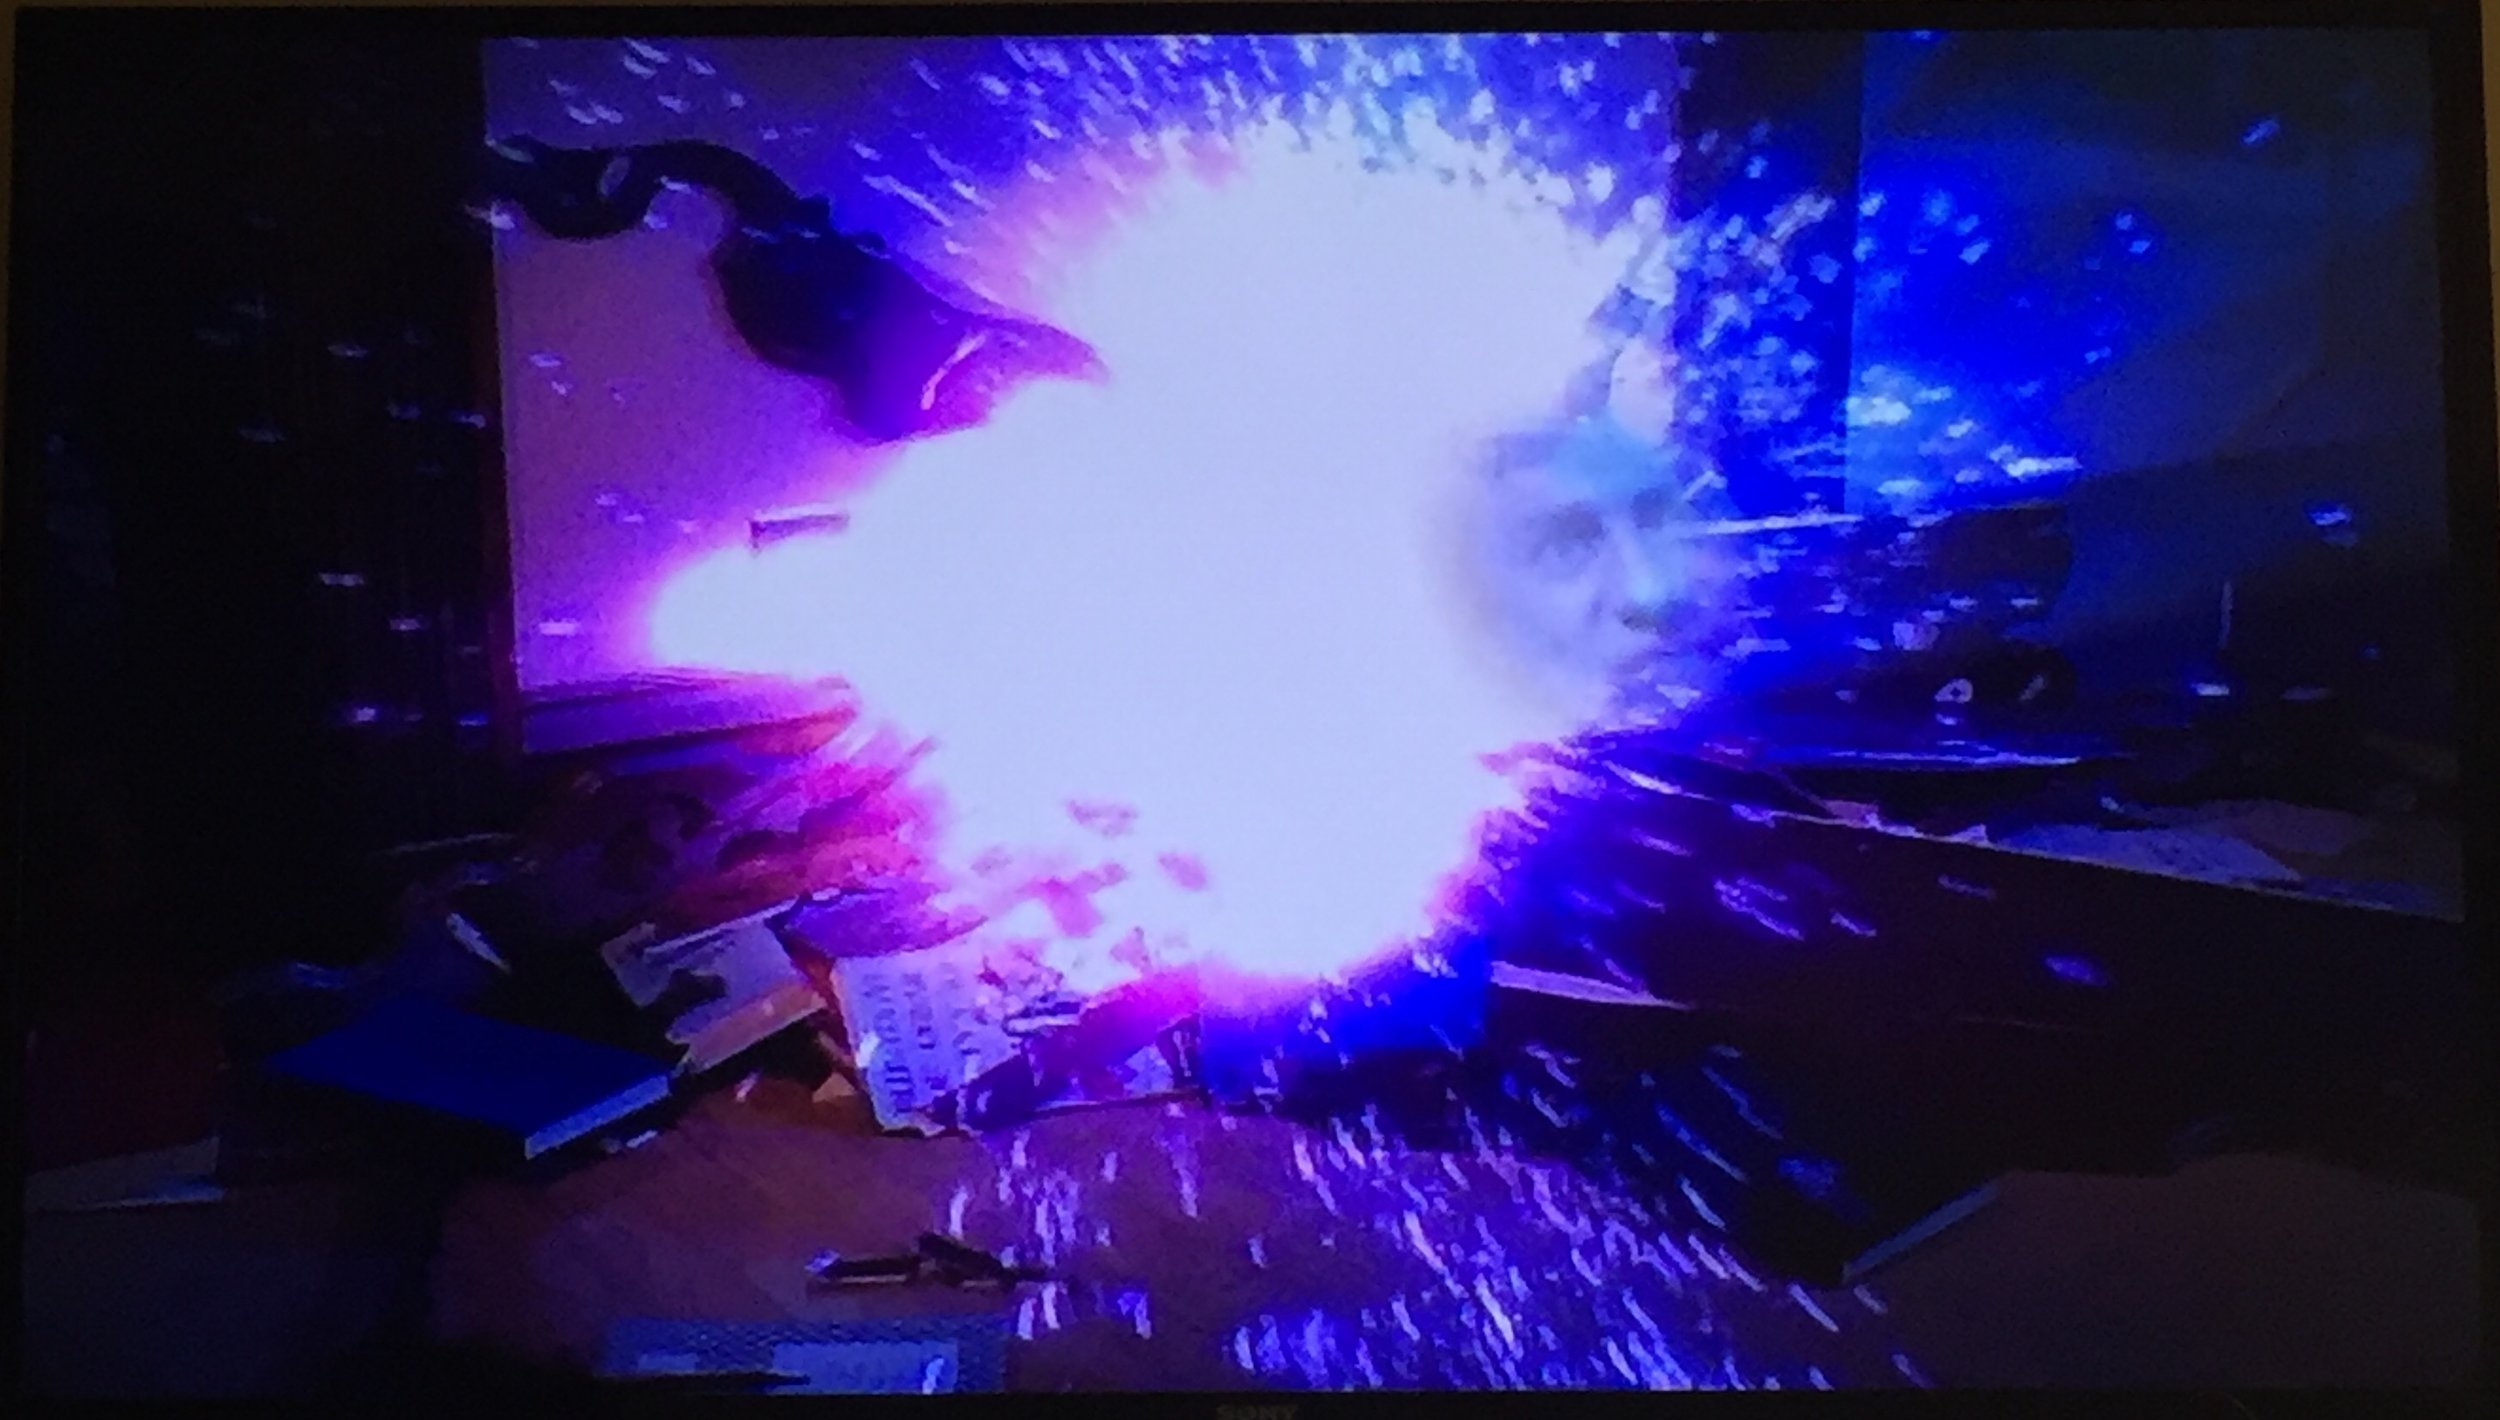 Gotta love the face in the explosion!